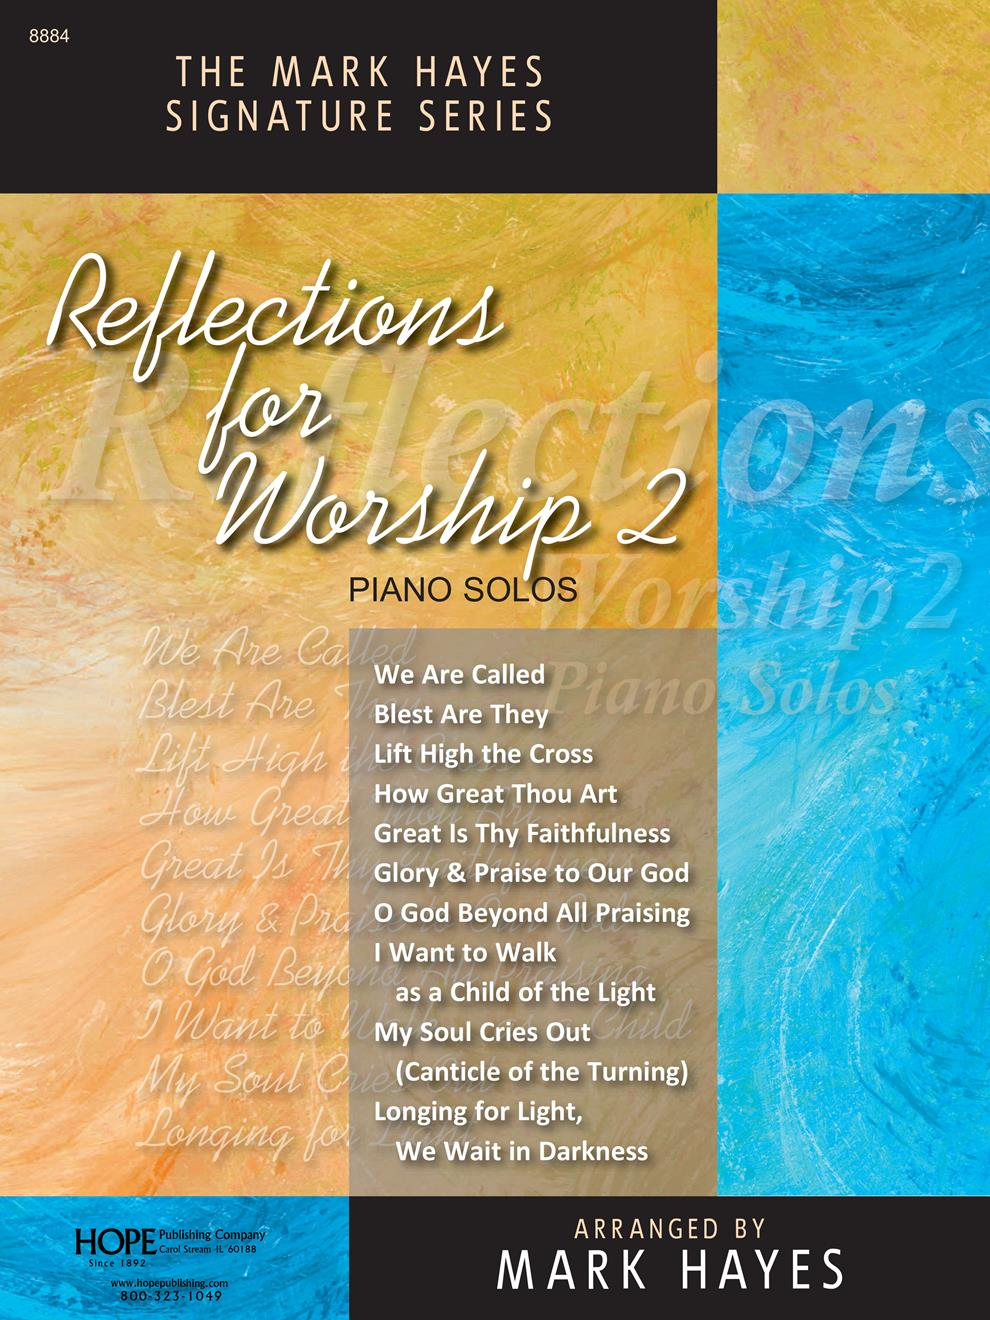 Reflections For Worship II - solo piano collection Cover Image